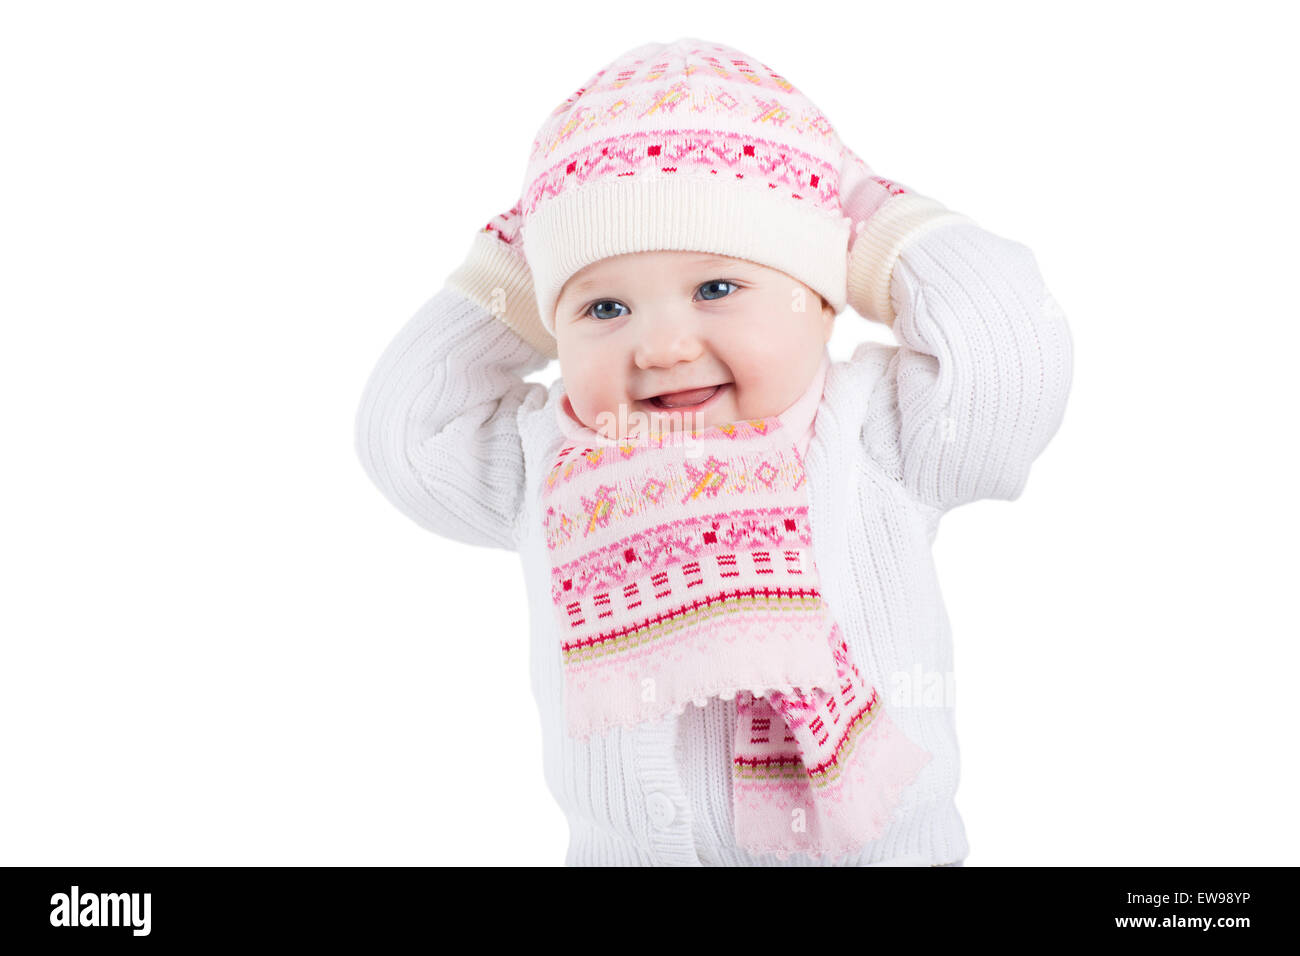 A Girl In A Knitted Hat Imágenes De Stock   A Girl In A Knitted Hat ... f1e3da5c455